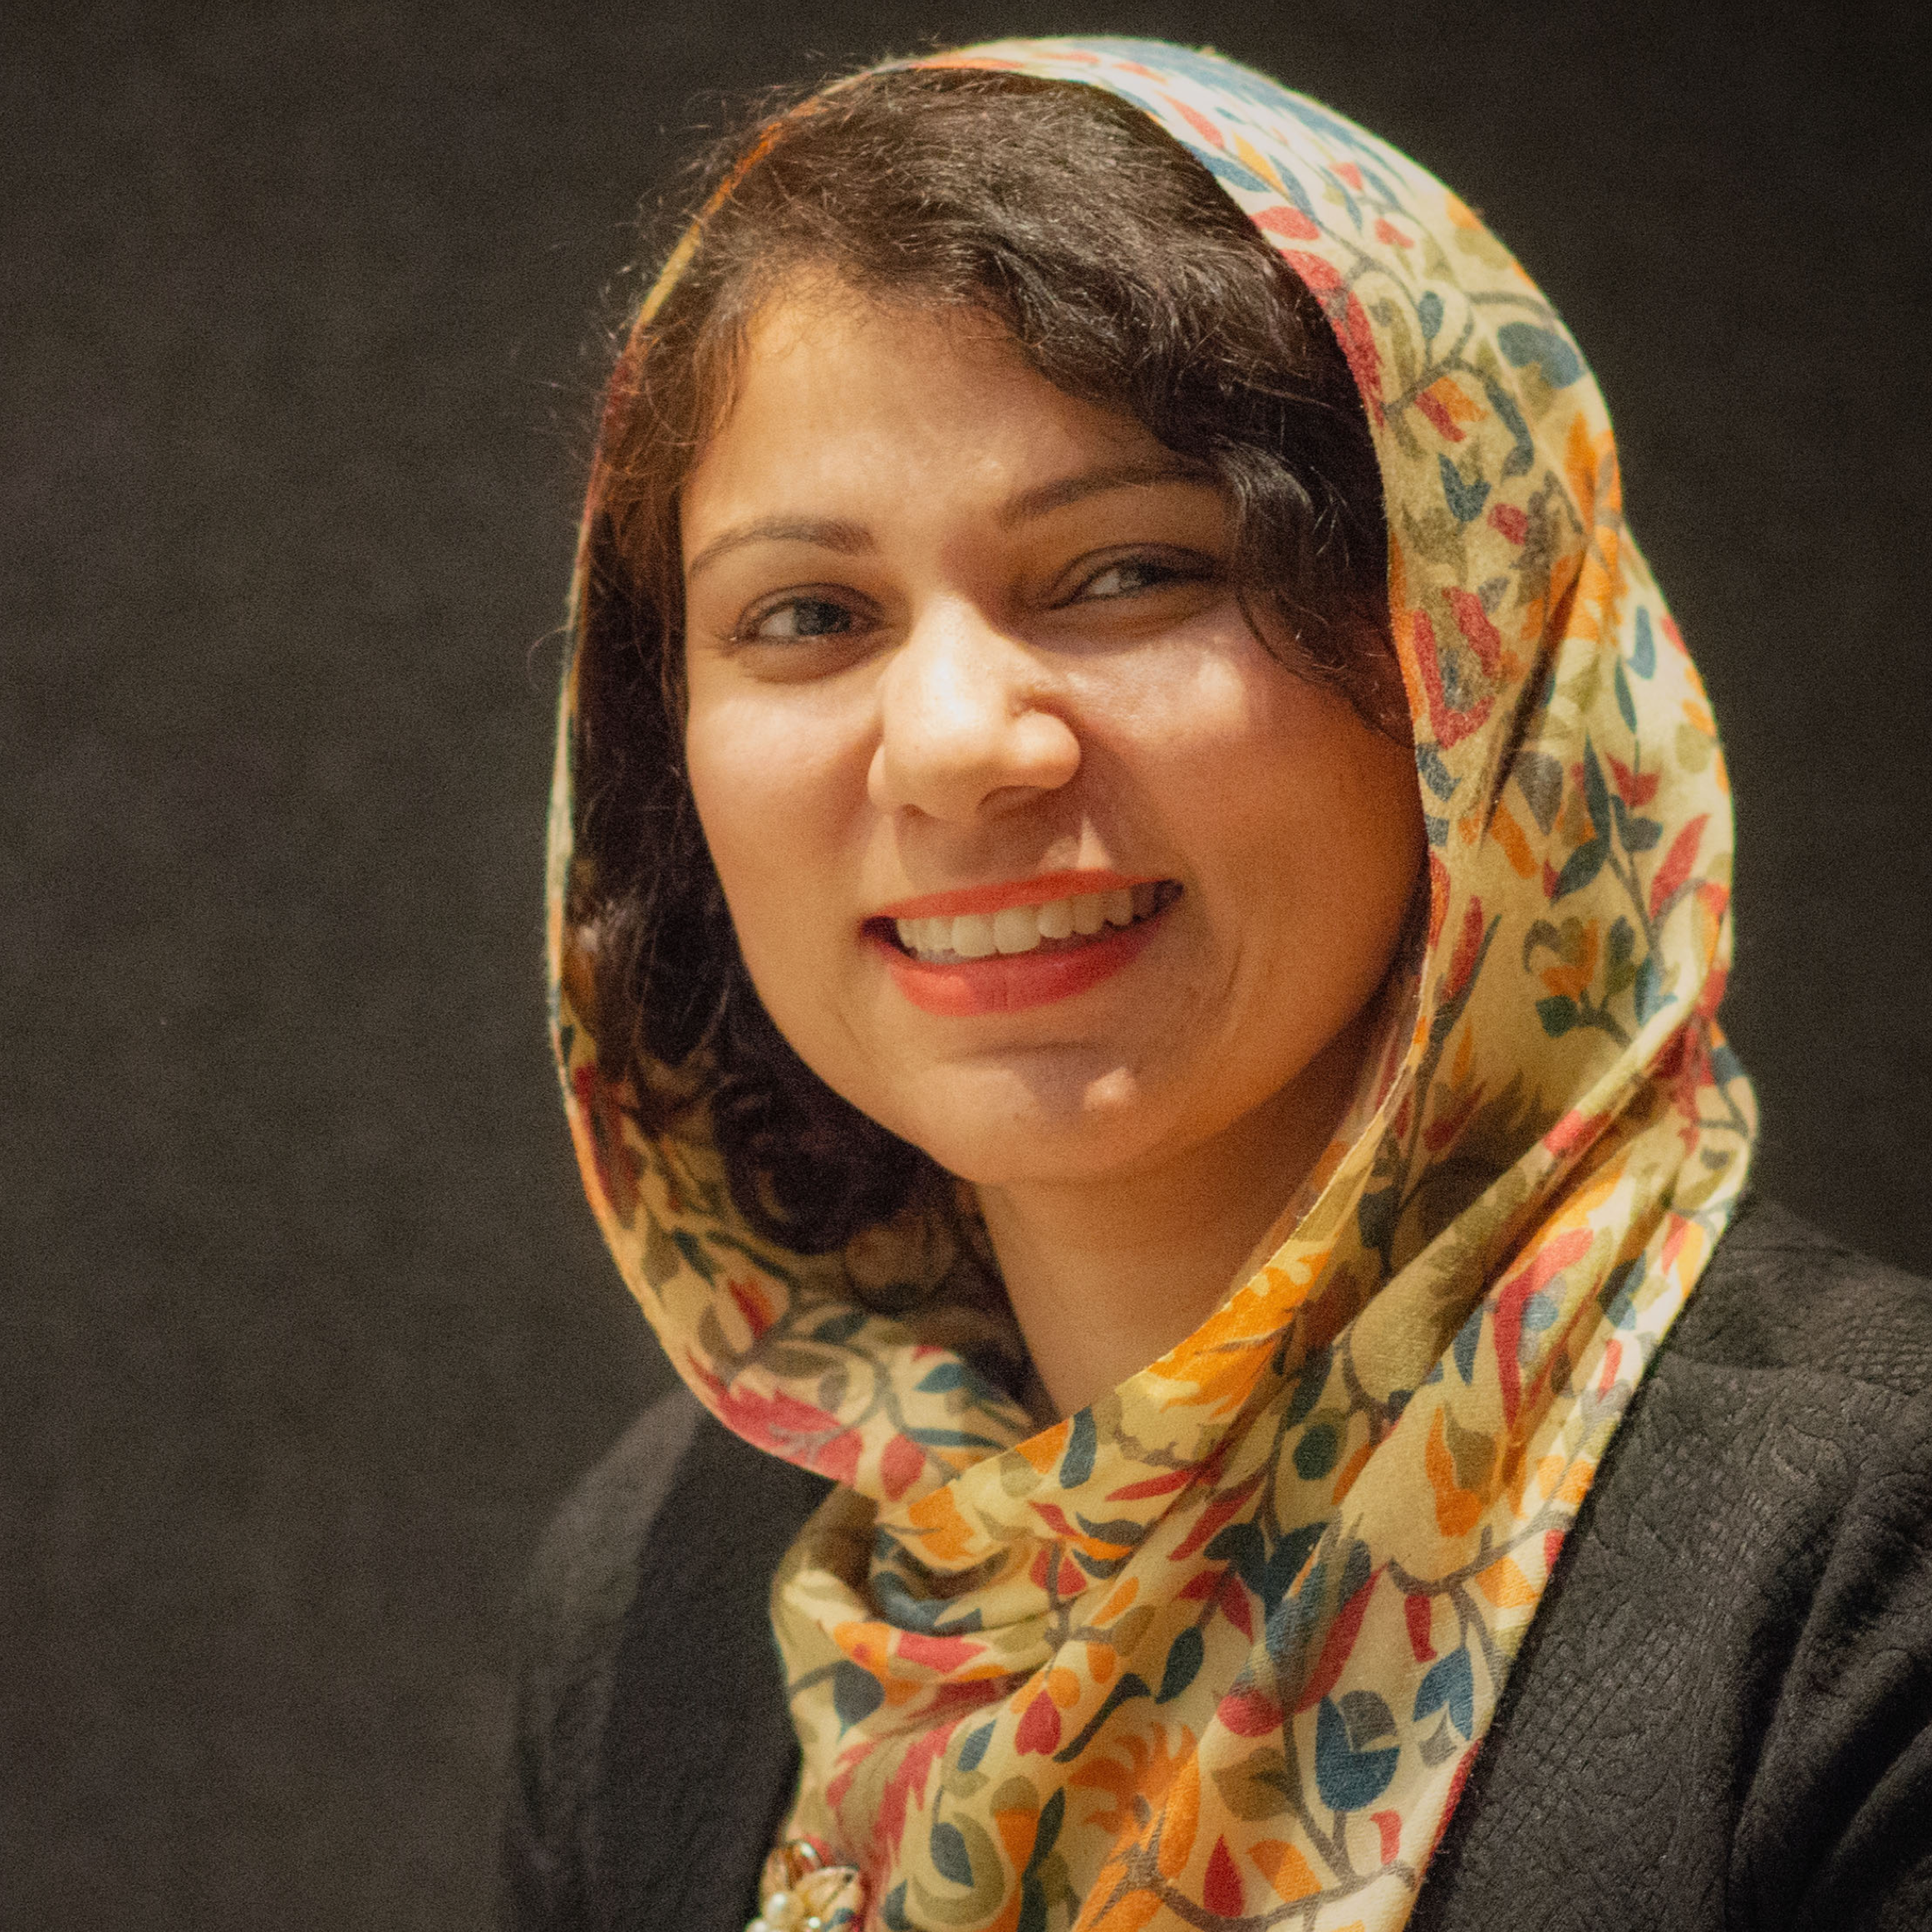 Zainab Hussain Siddiqui   A leading advocate for the role of tech in creating sustainable solutions